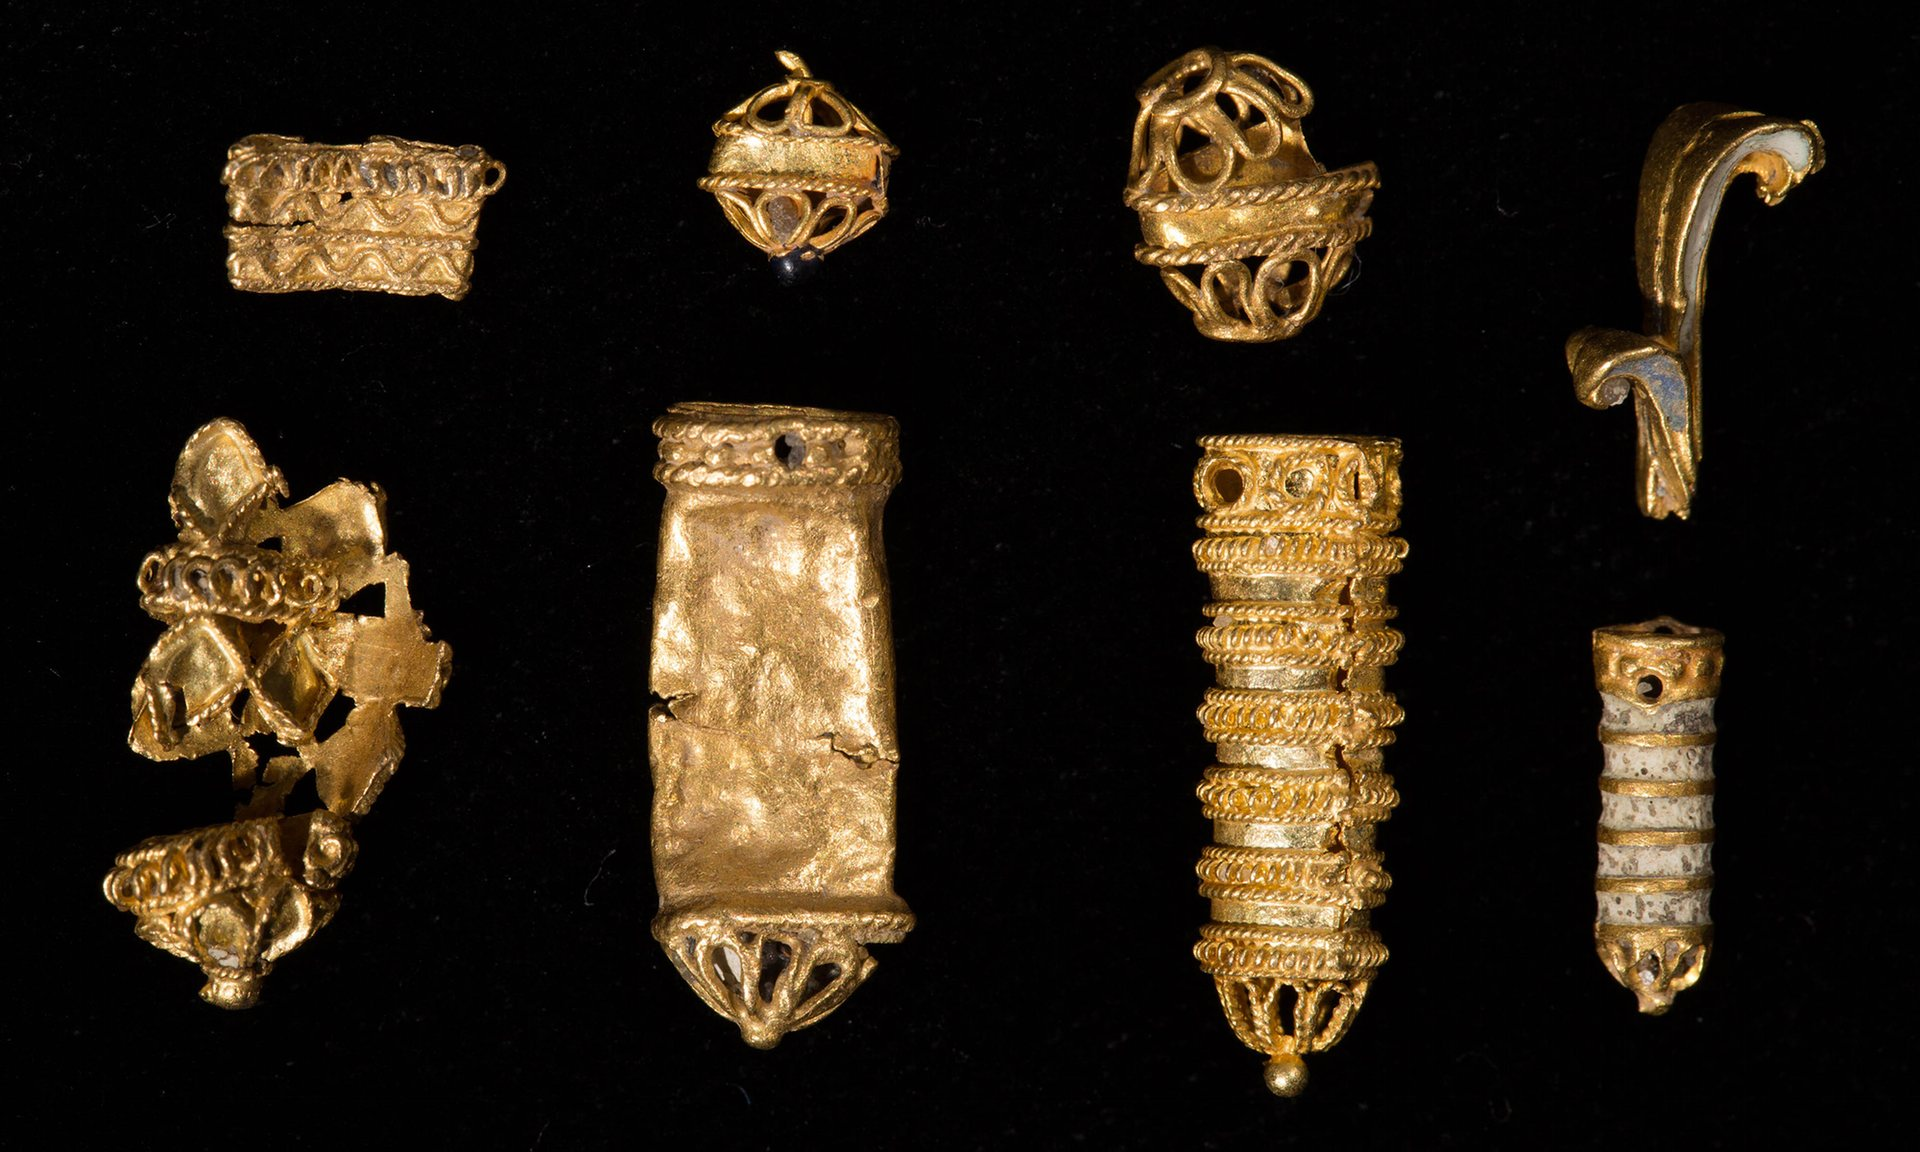 16th century gold trove discovered by Thames